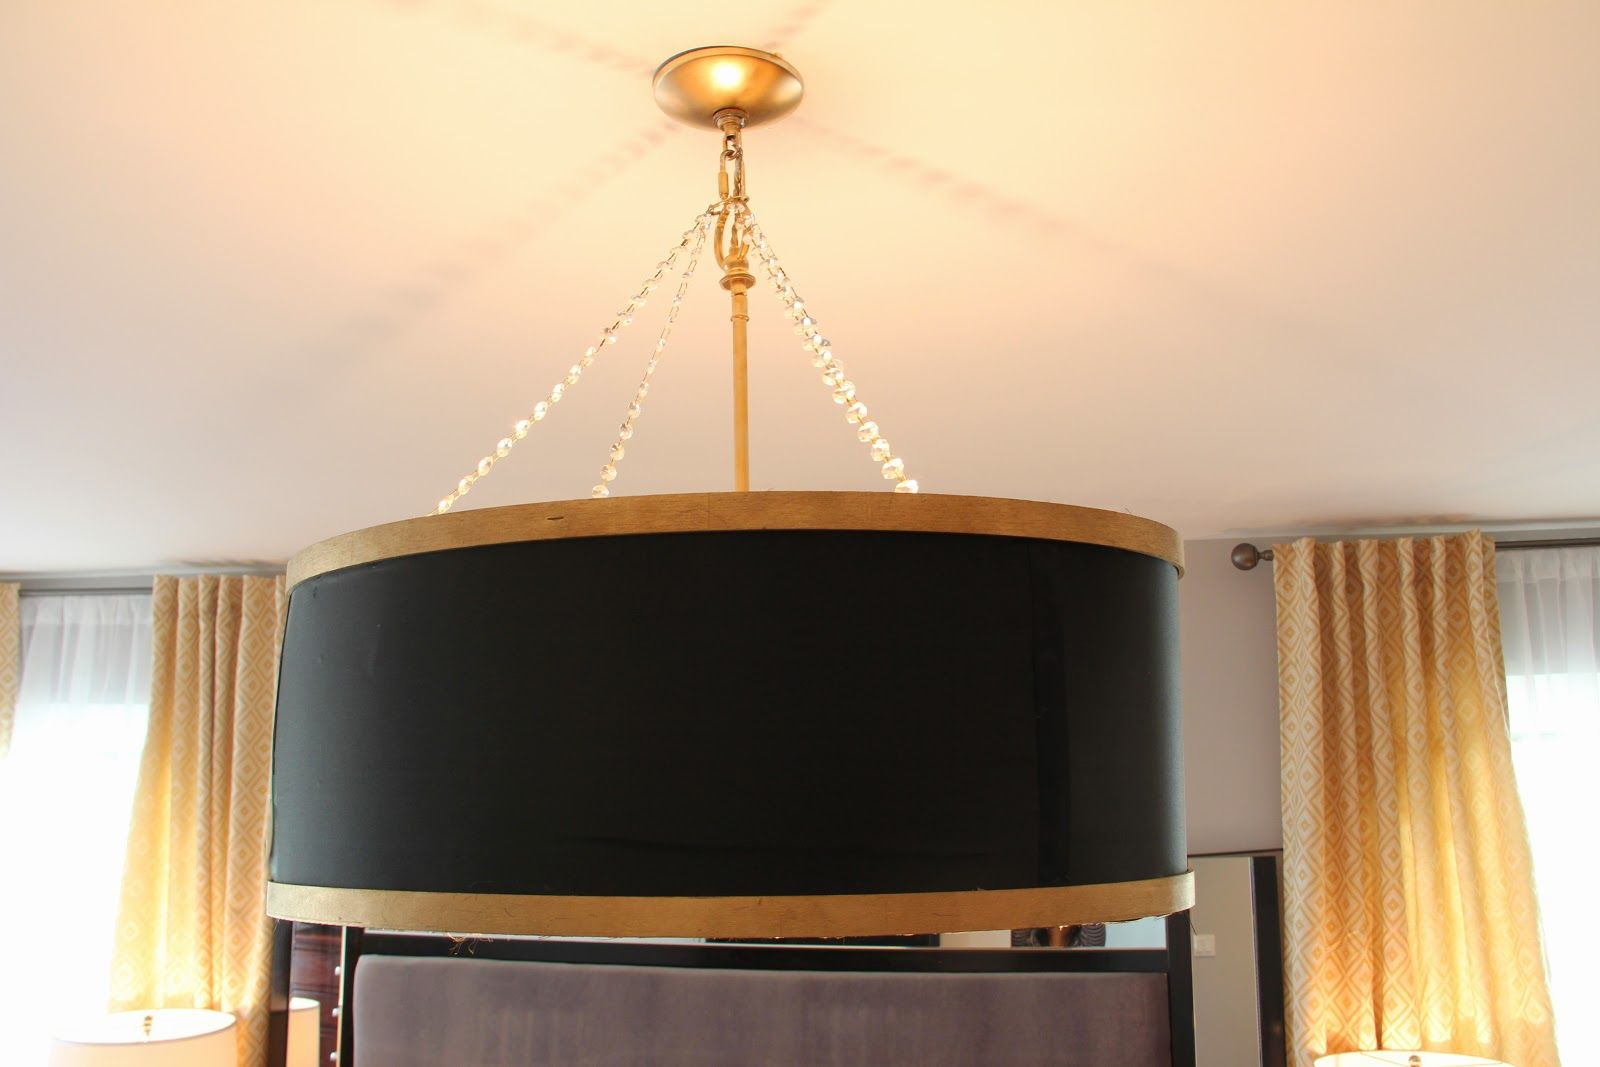 Pretty Clever And Light Fixture Idea Sheer Serendipity Diy Drum Shade Chandelier